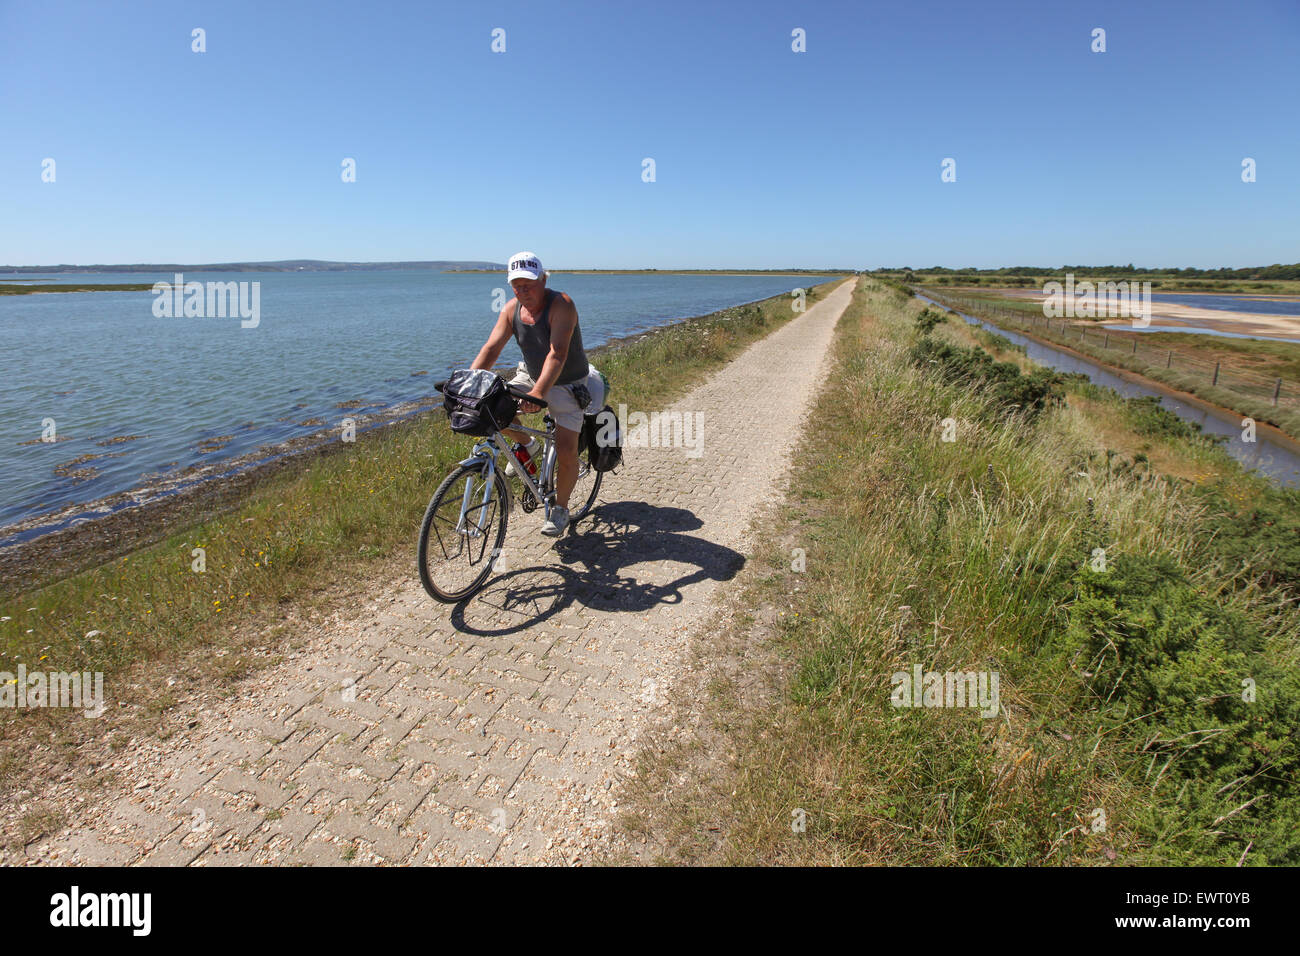 Cycling on the Solent Way between Lymington and Keyhaven - Stock Image